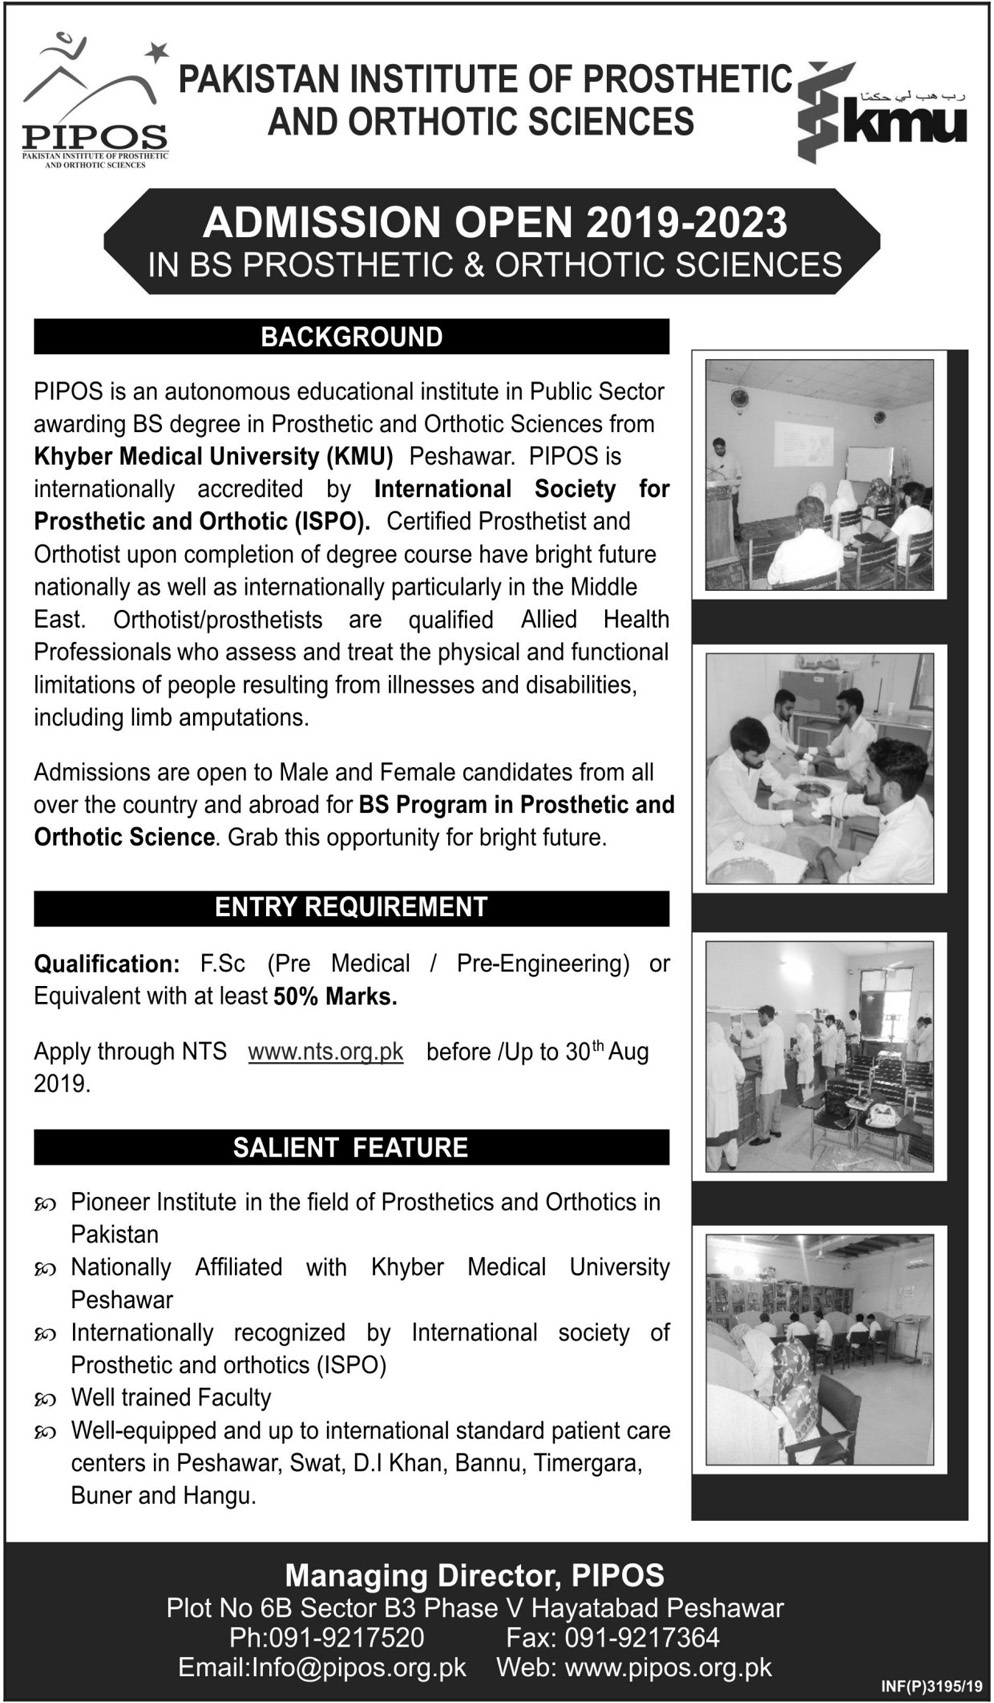 PIPOS Pakistan Institute of Prosthetic and Orthotic Sciences Admissions Fall 2019